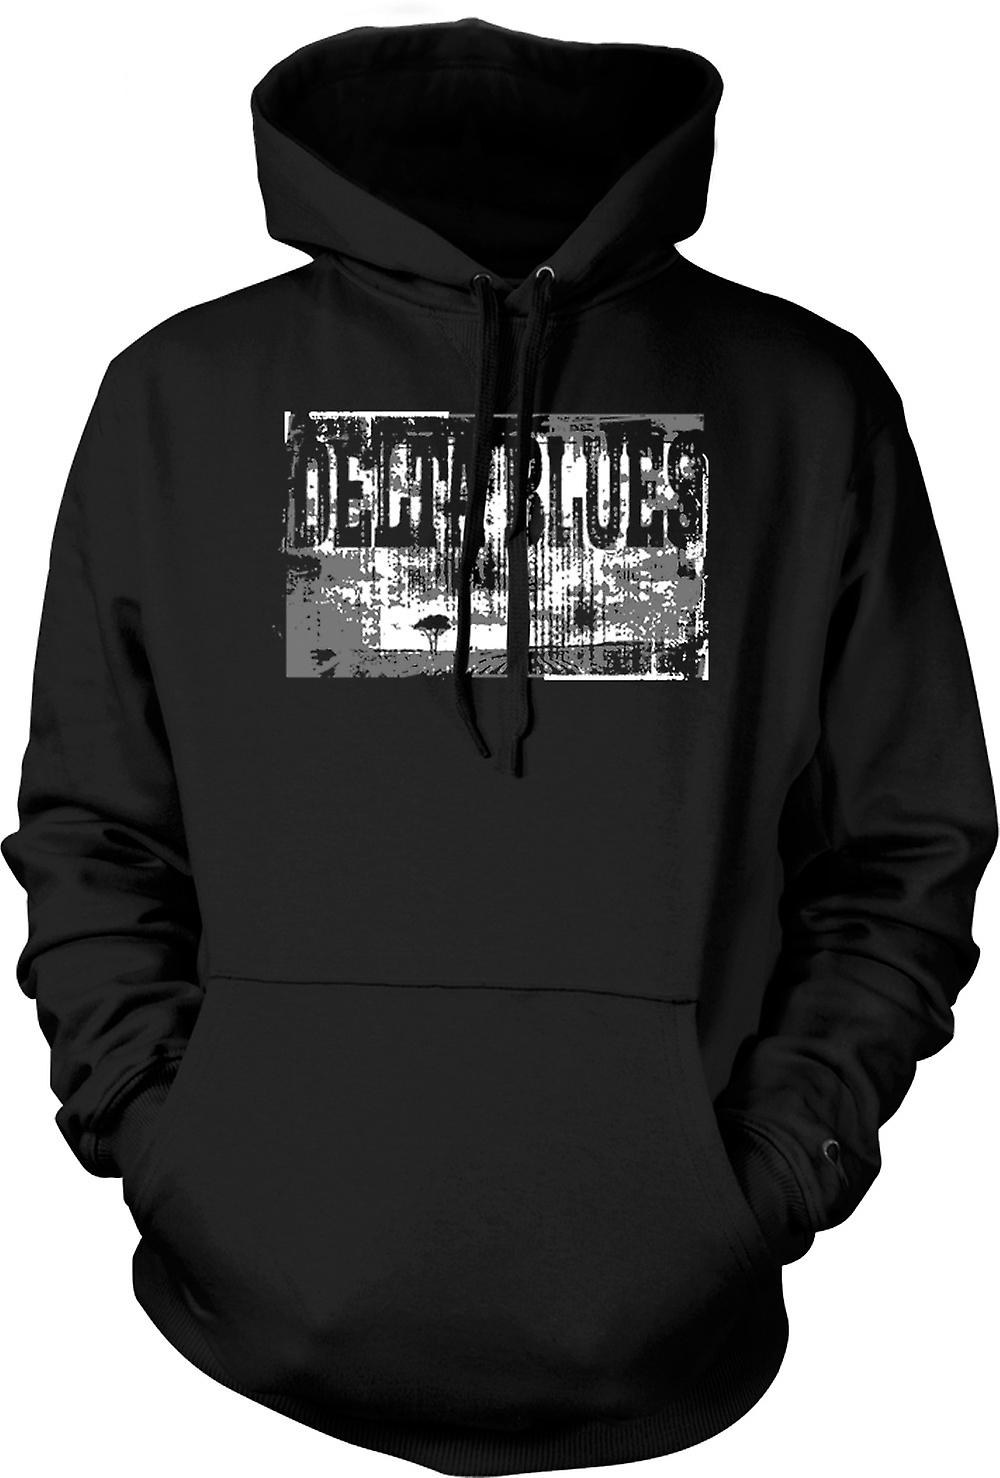 Mens Hoodie - Delta Blues Guitar - Musique rock